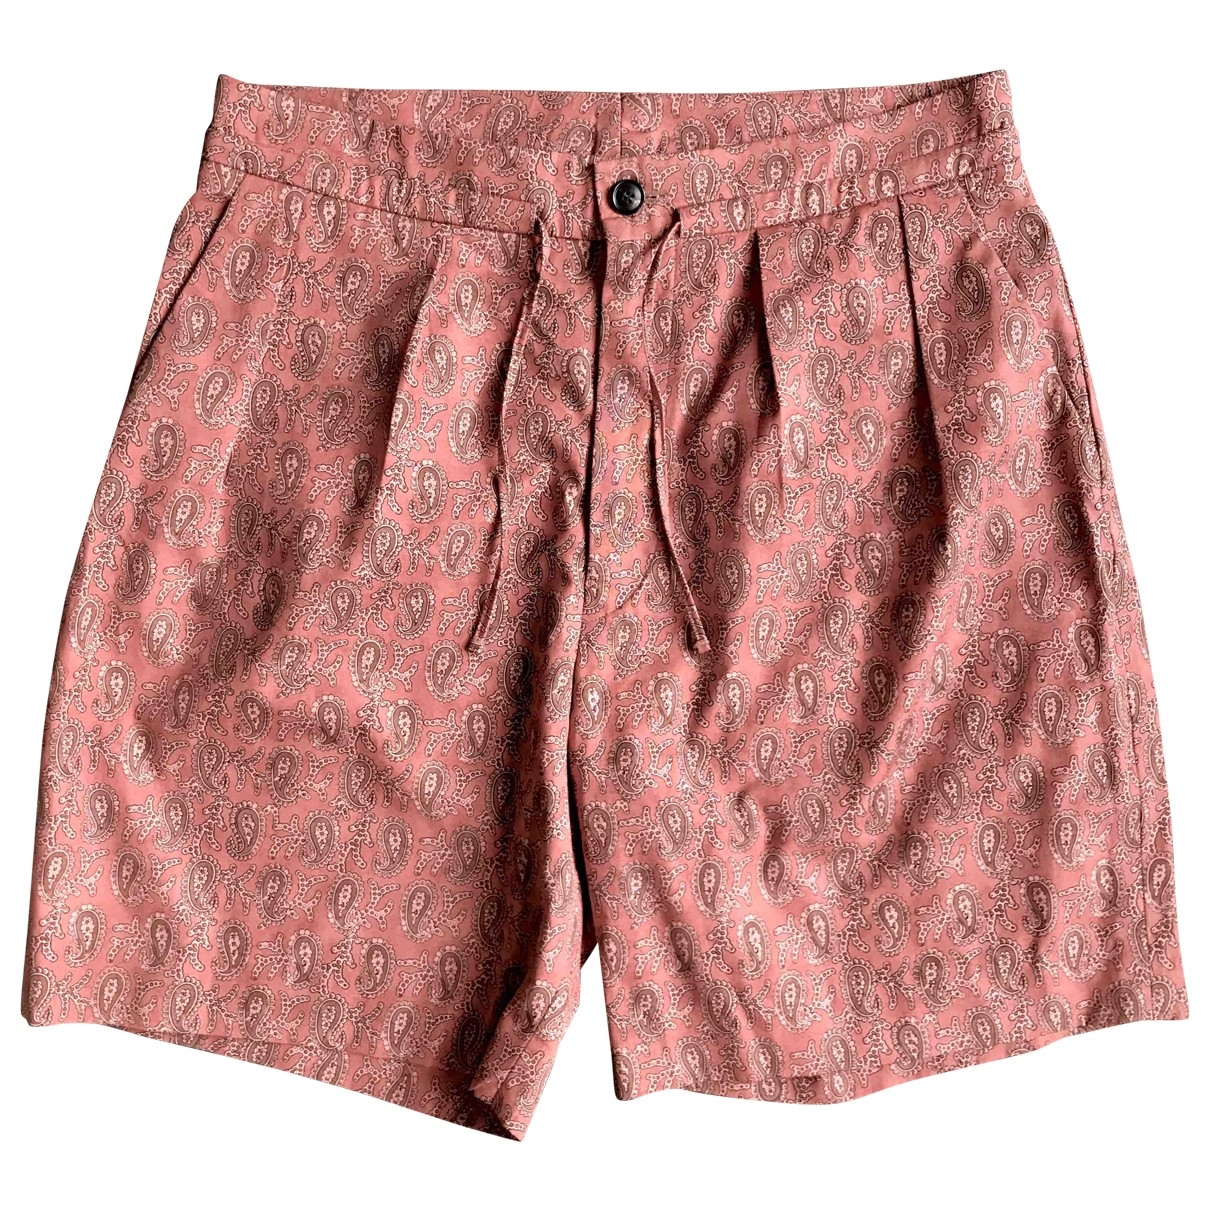 Paul Smith \N Cotton Shorts for Men 32 UK - US